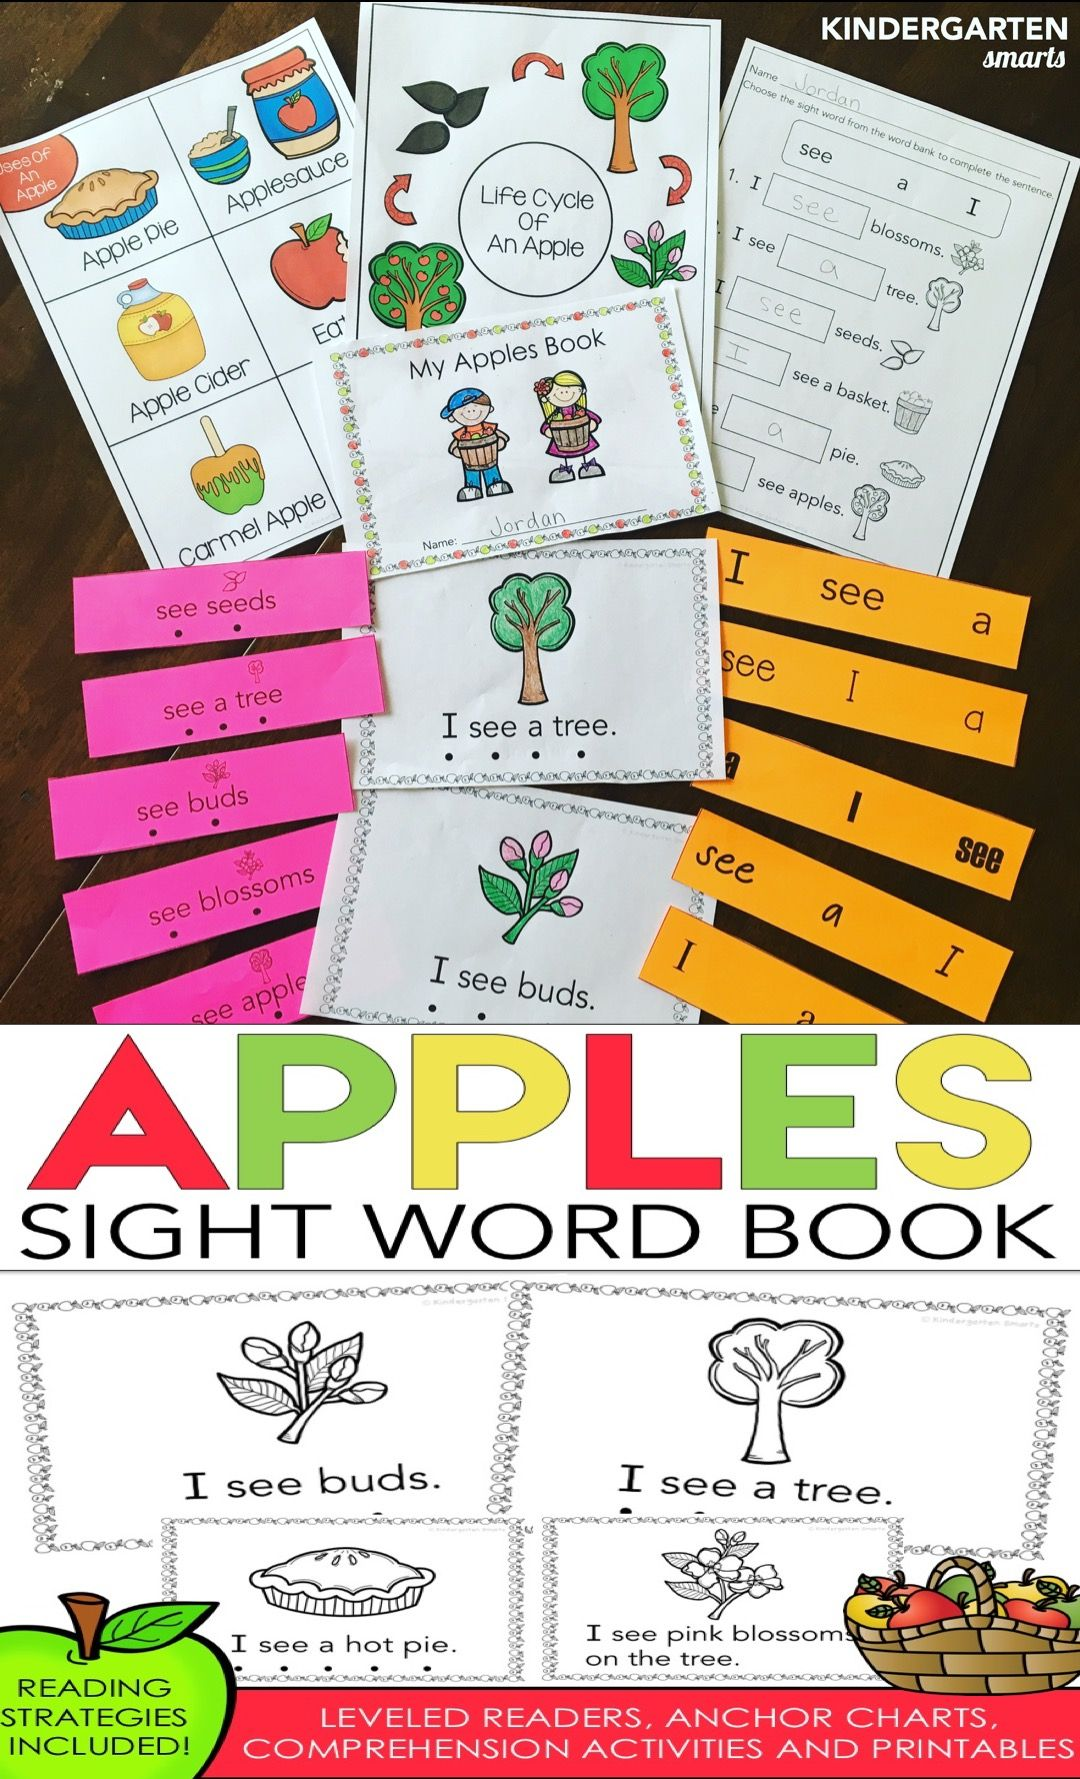 Apples Sight Word Book | Pinterest